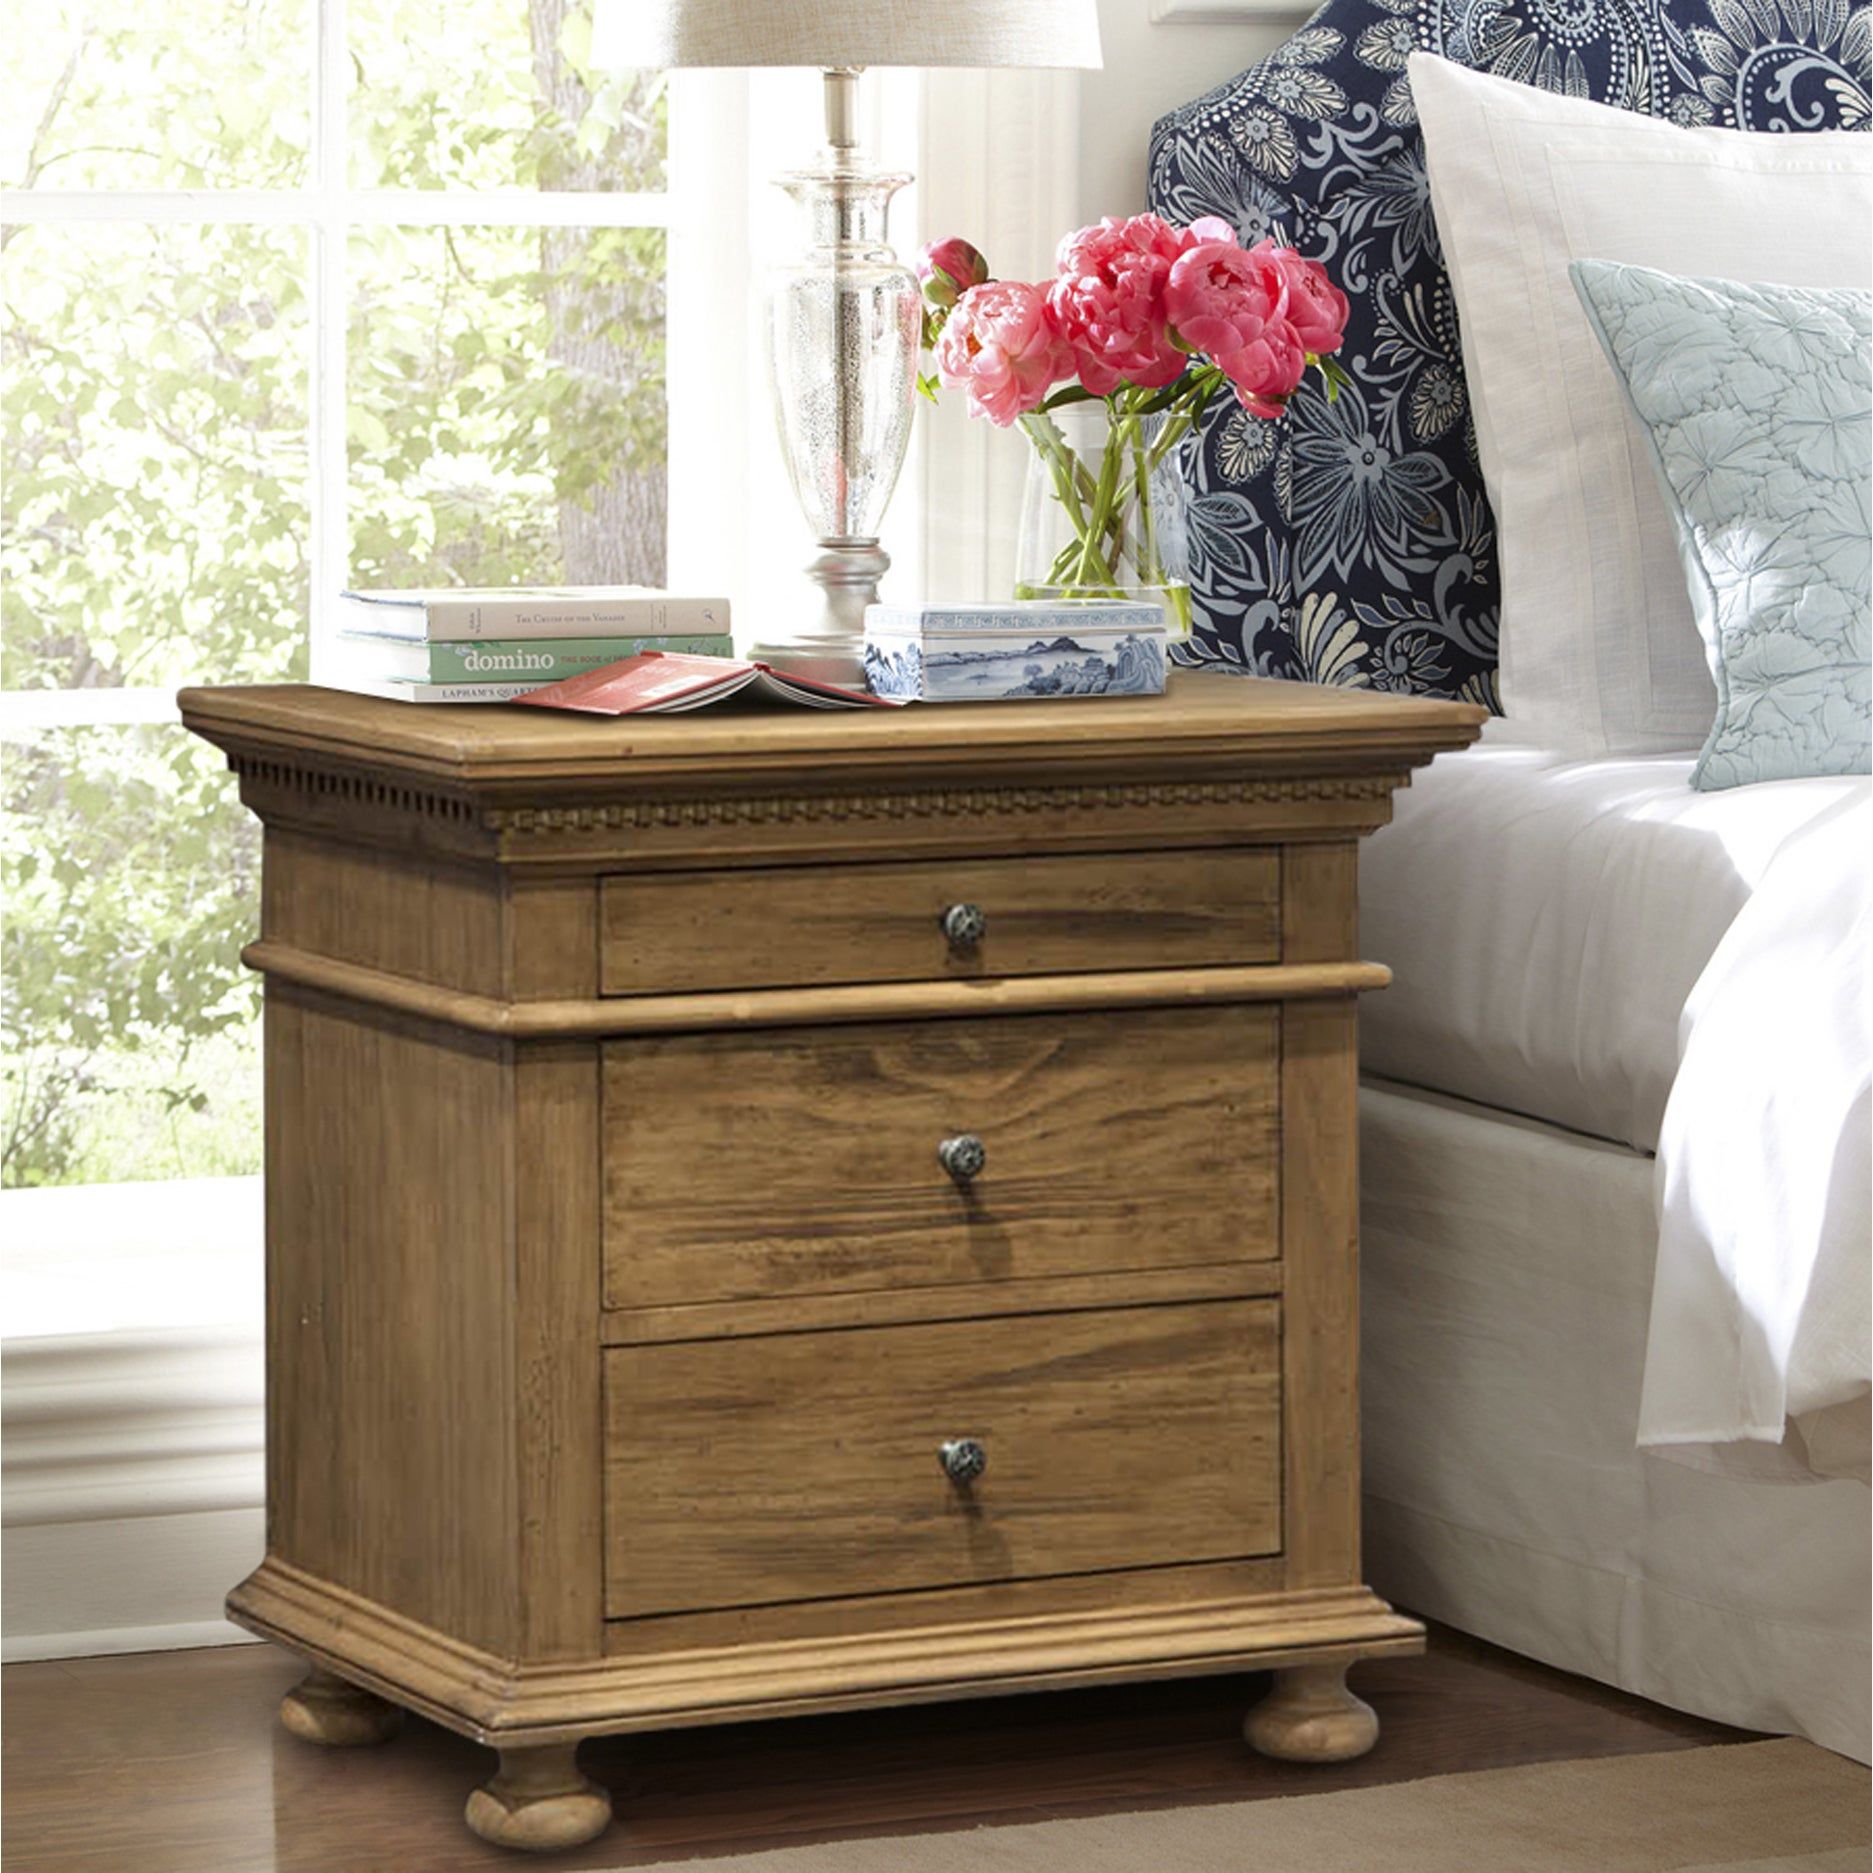 5378f0342988 Shop Addington Hill 3 Drawer Night Stand - On Sale - Free Shipping ...